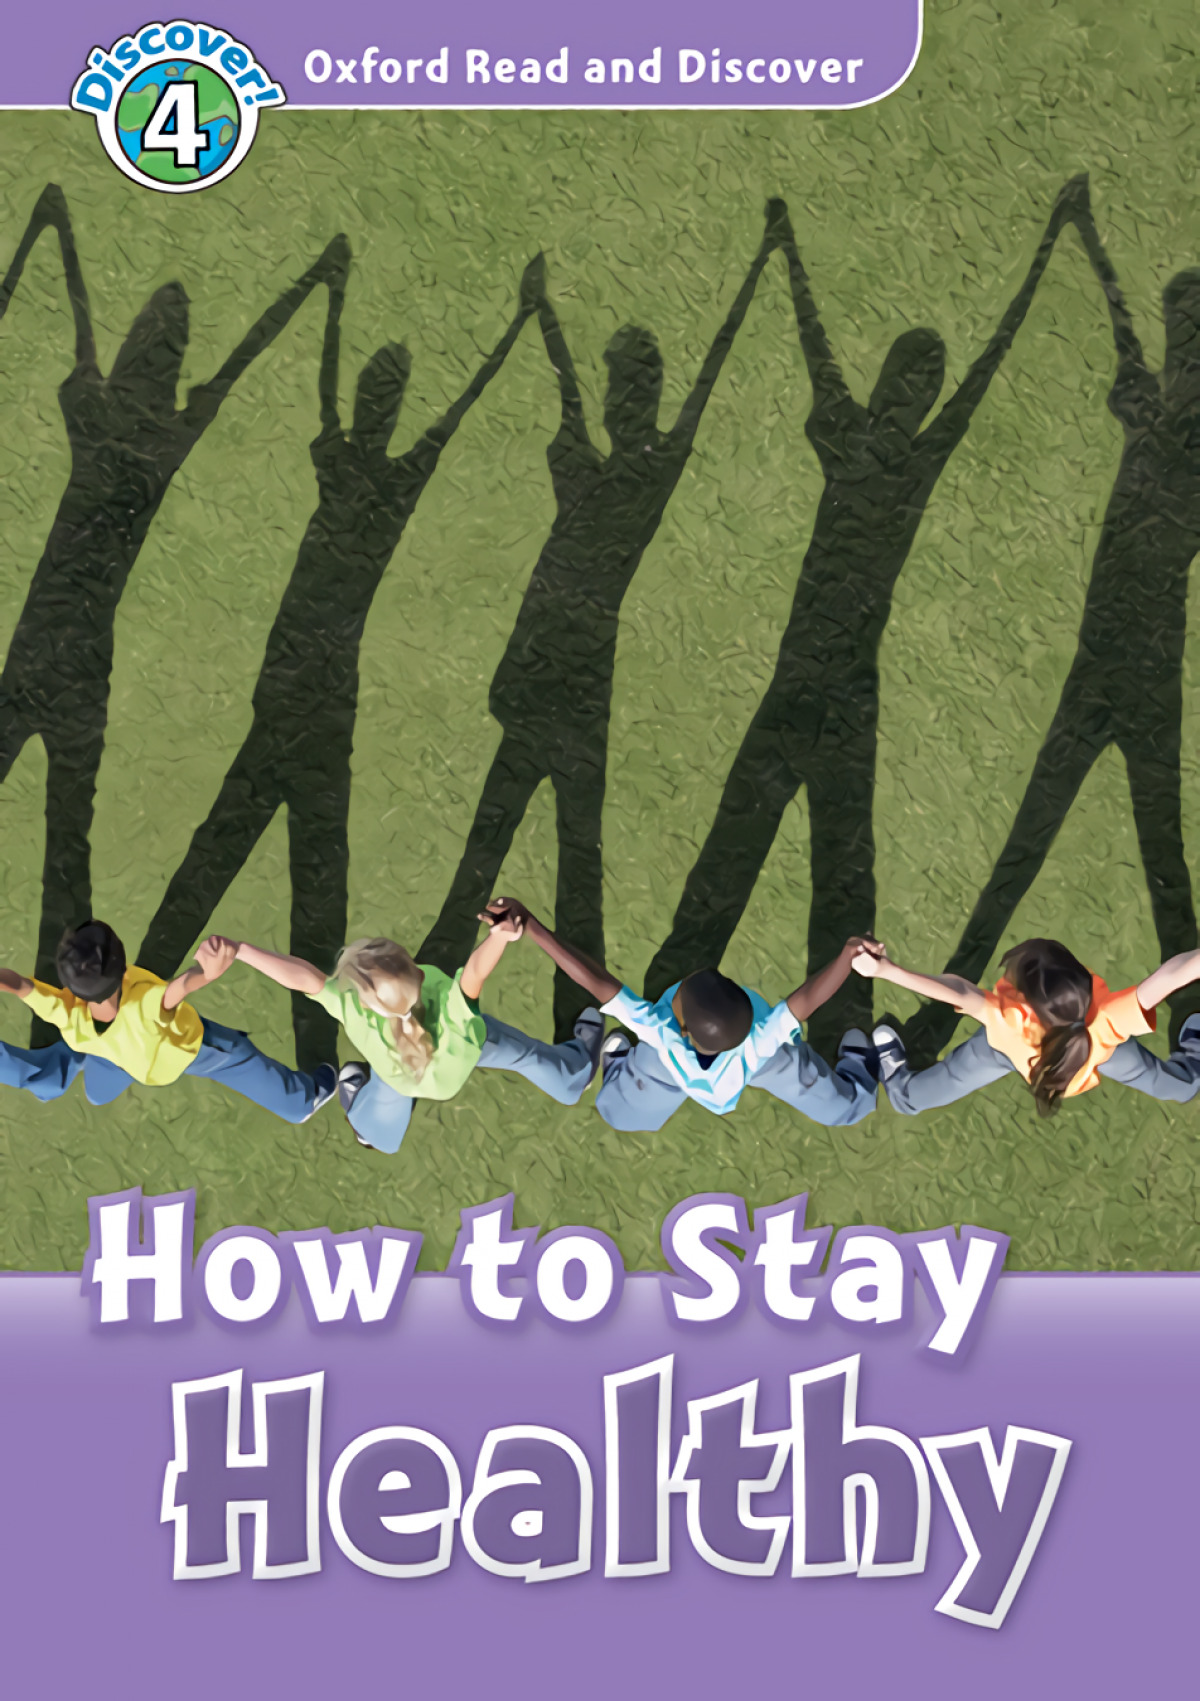 Oxford Read and Discover 4. How to Stay Healthy MP3 Pack